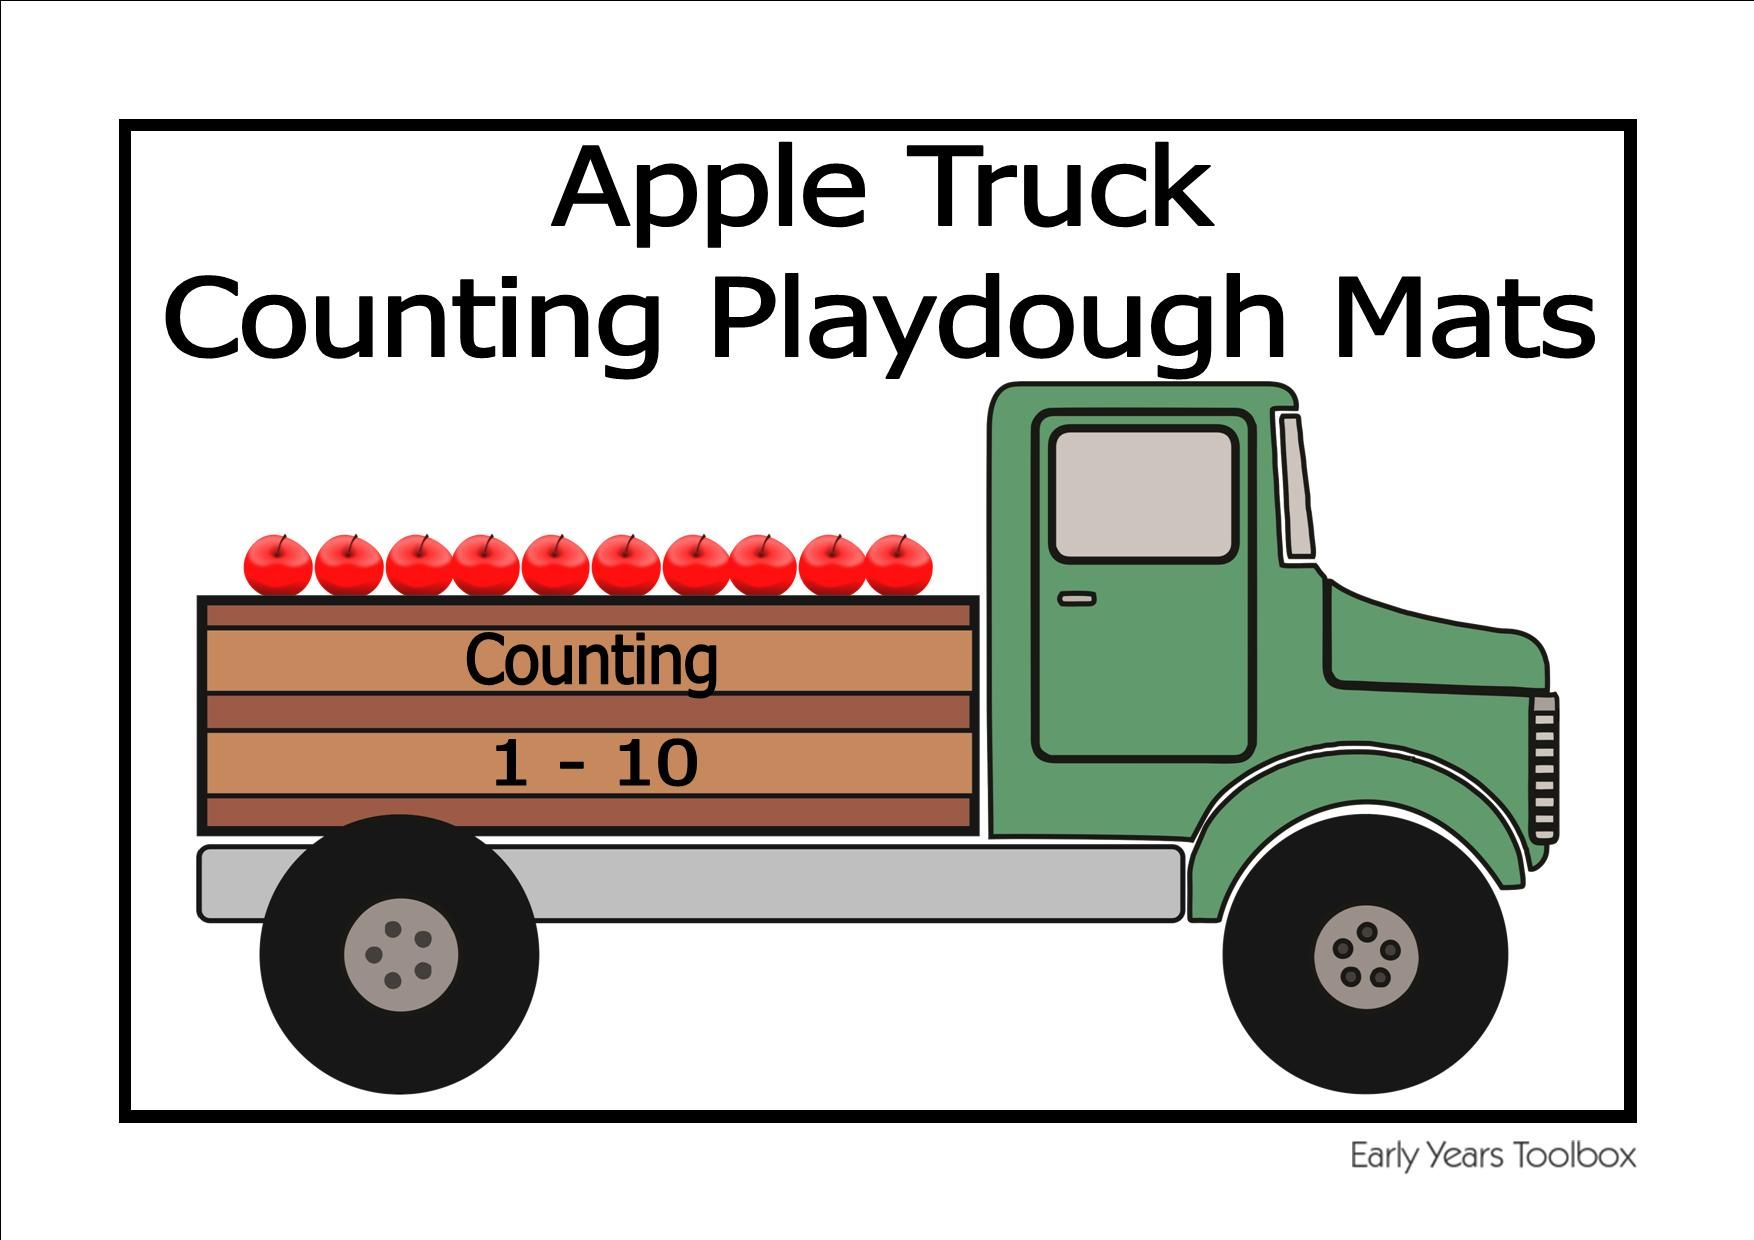 Apple Truck Counting